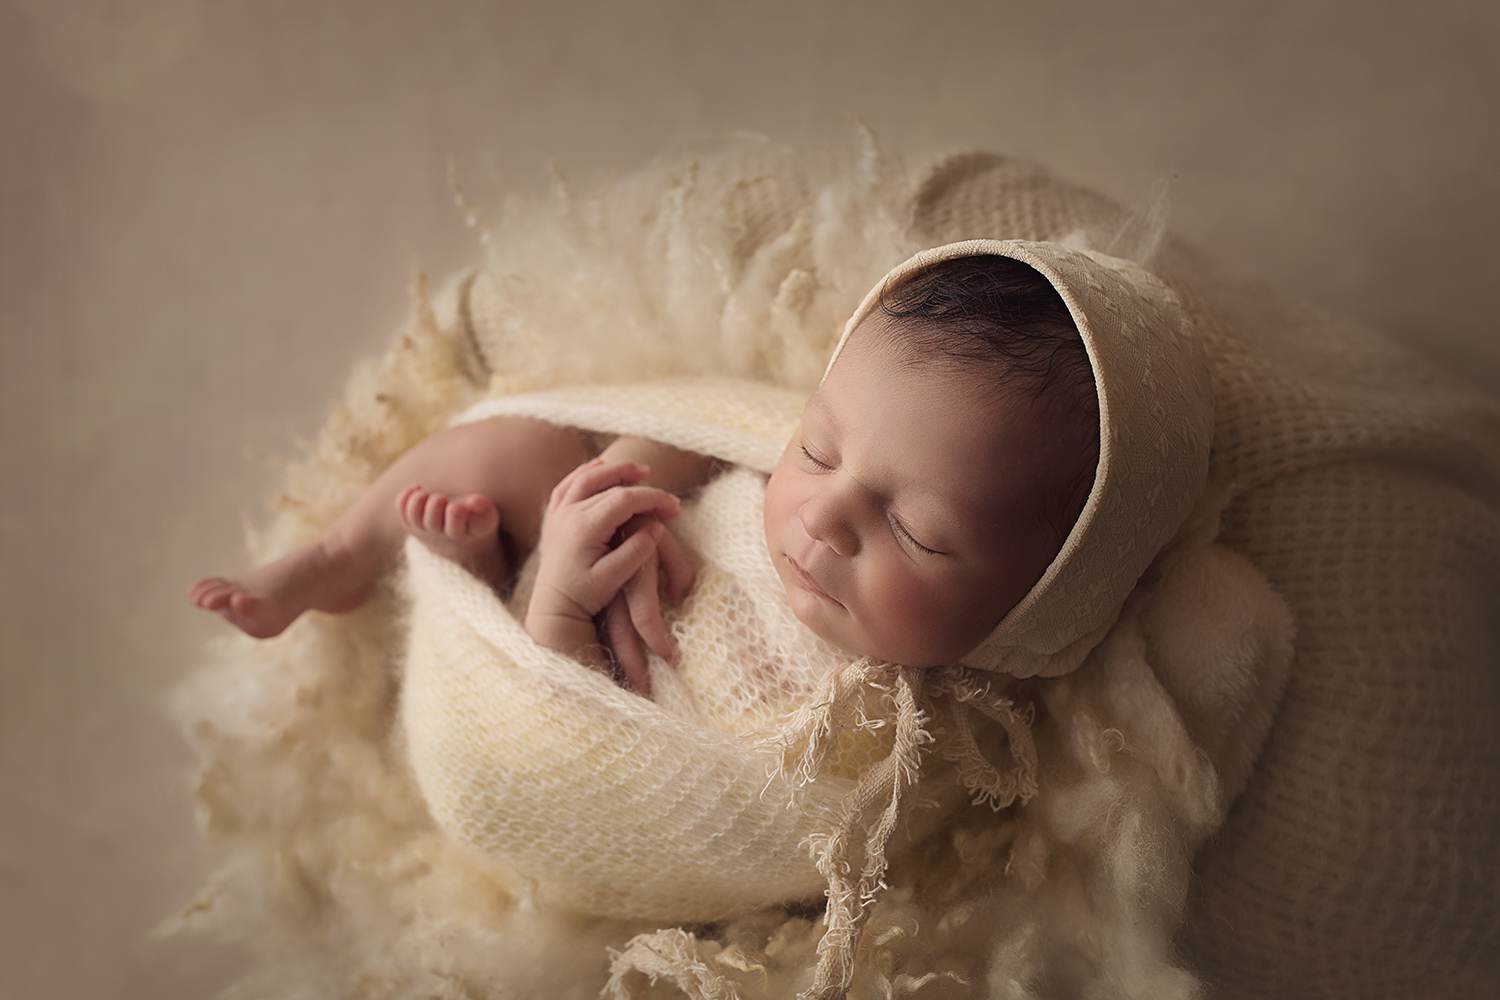 Fort Benning Ga Newborn Photographer Columbus ga newborn photographer cream setup bonnet neutral furs